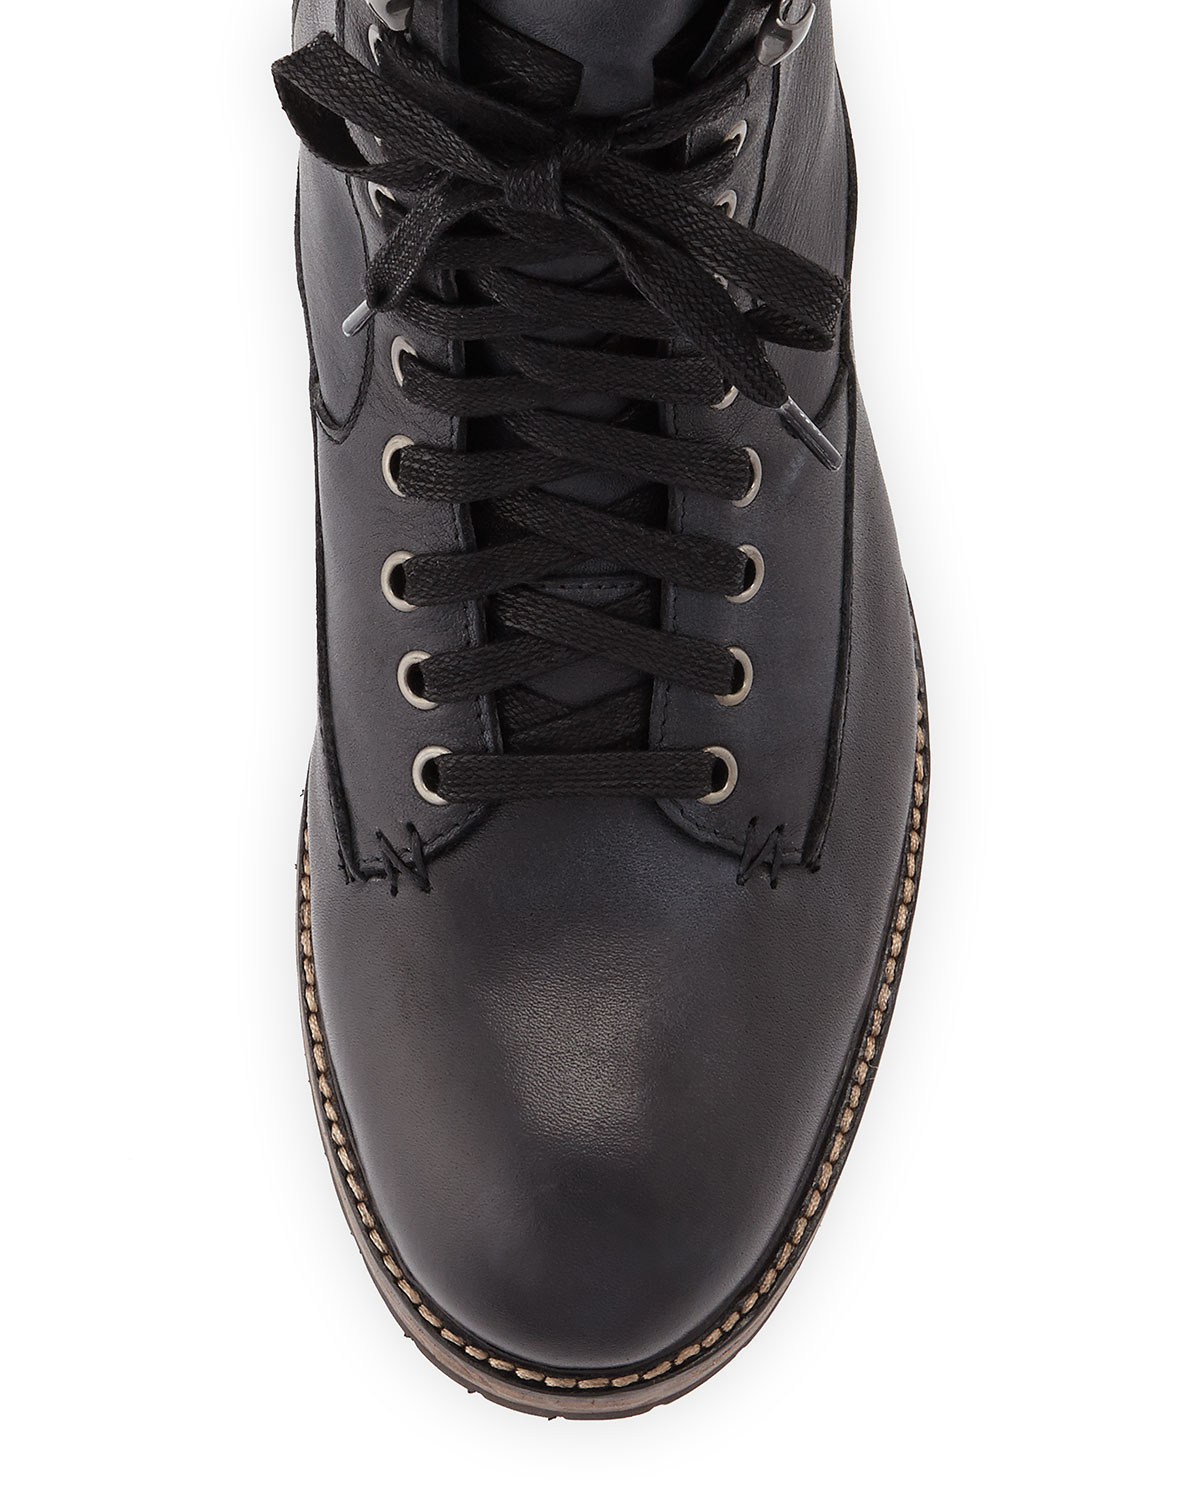 John Varvatos Gibbons Tall Lace-Up Boots in Black for Men ...